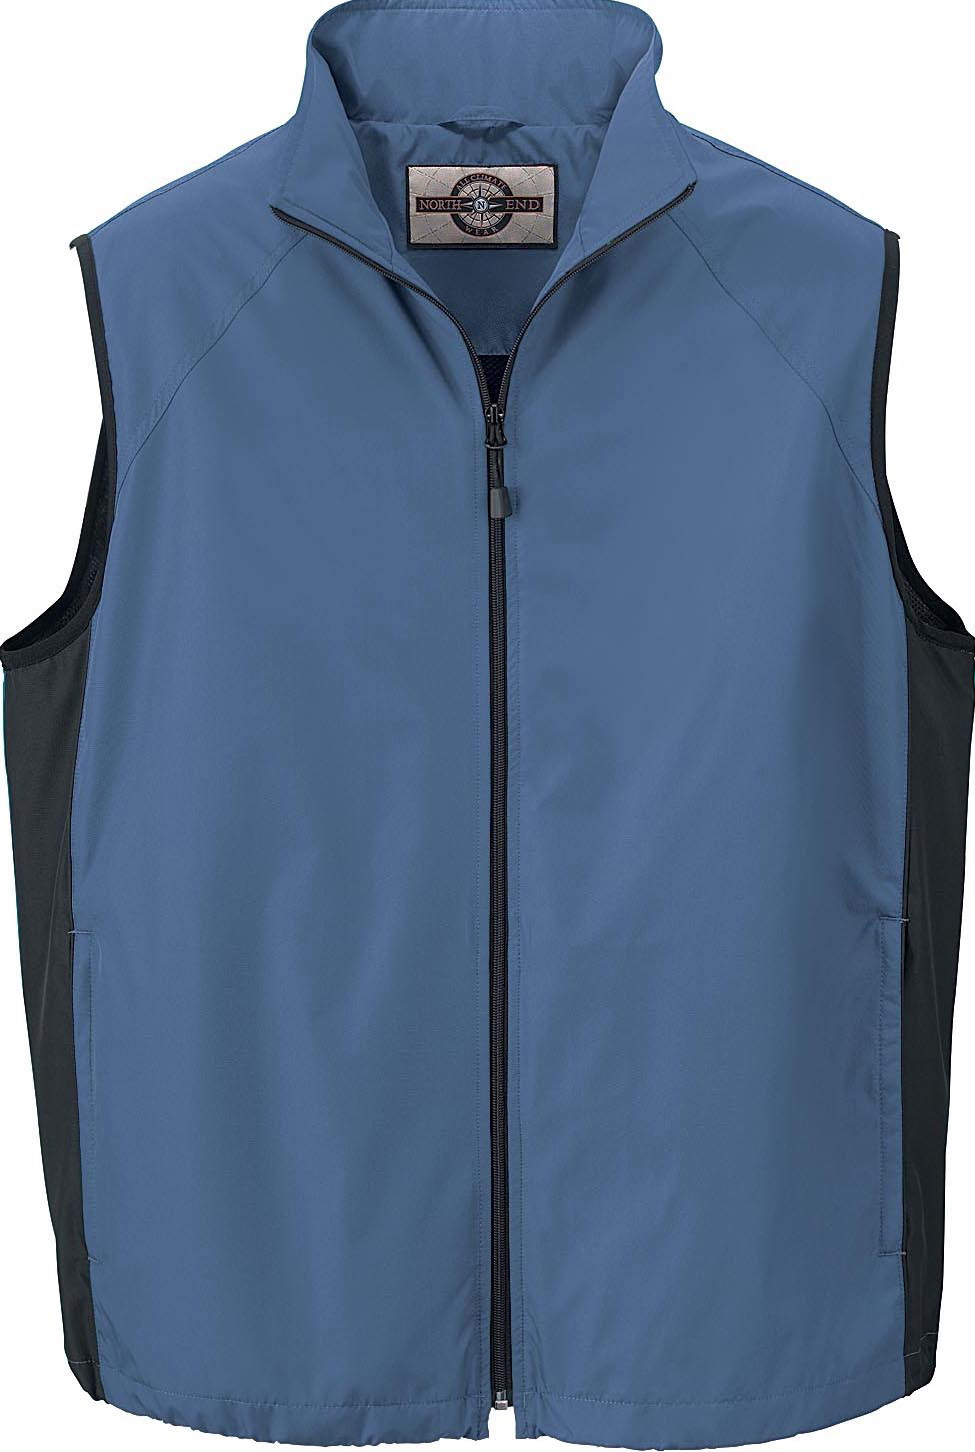 Ash City Techno series 88097 - Men's Active Wear Vest